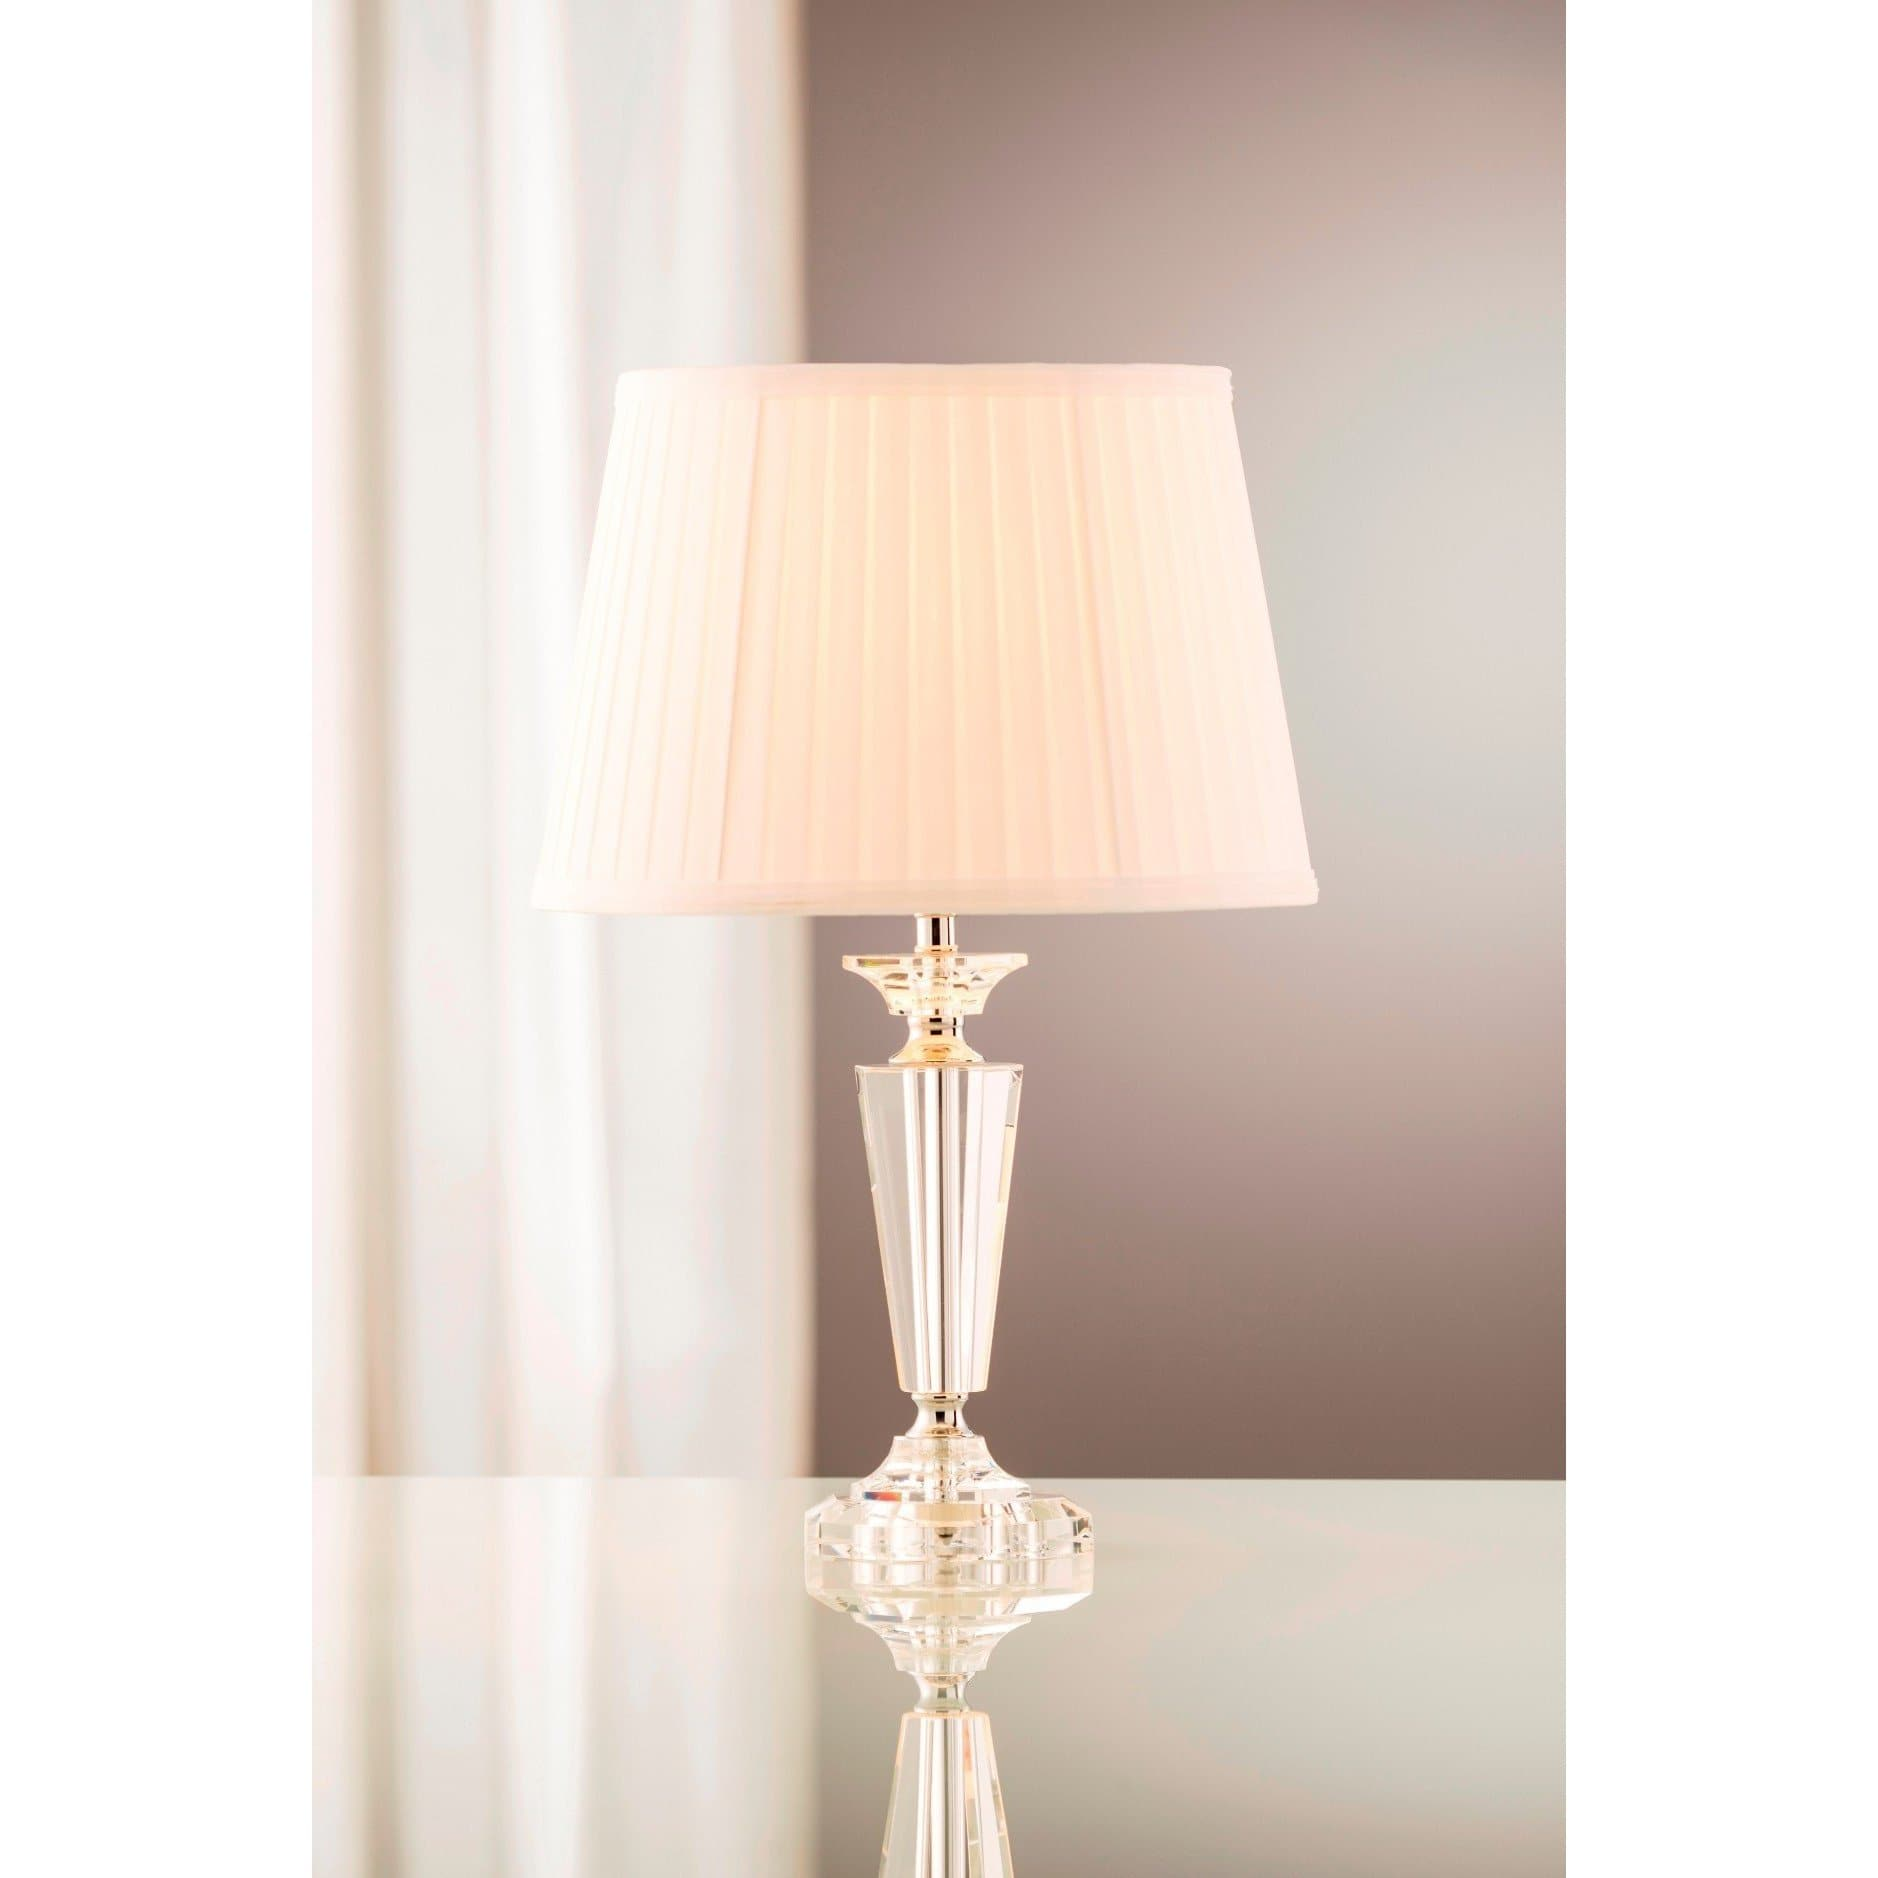 Sofia Lamp & Shade (IRL/UK Fittings)